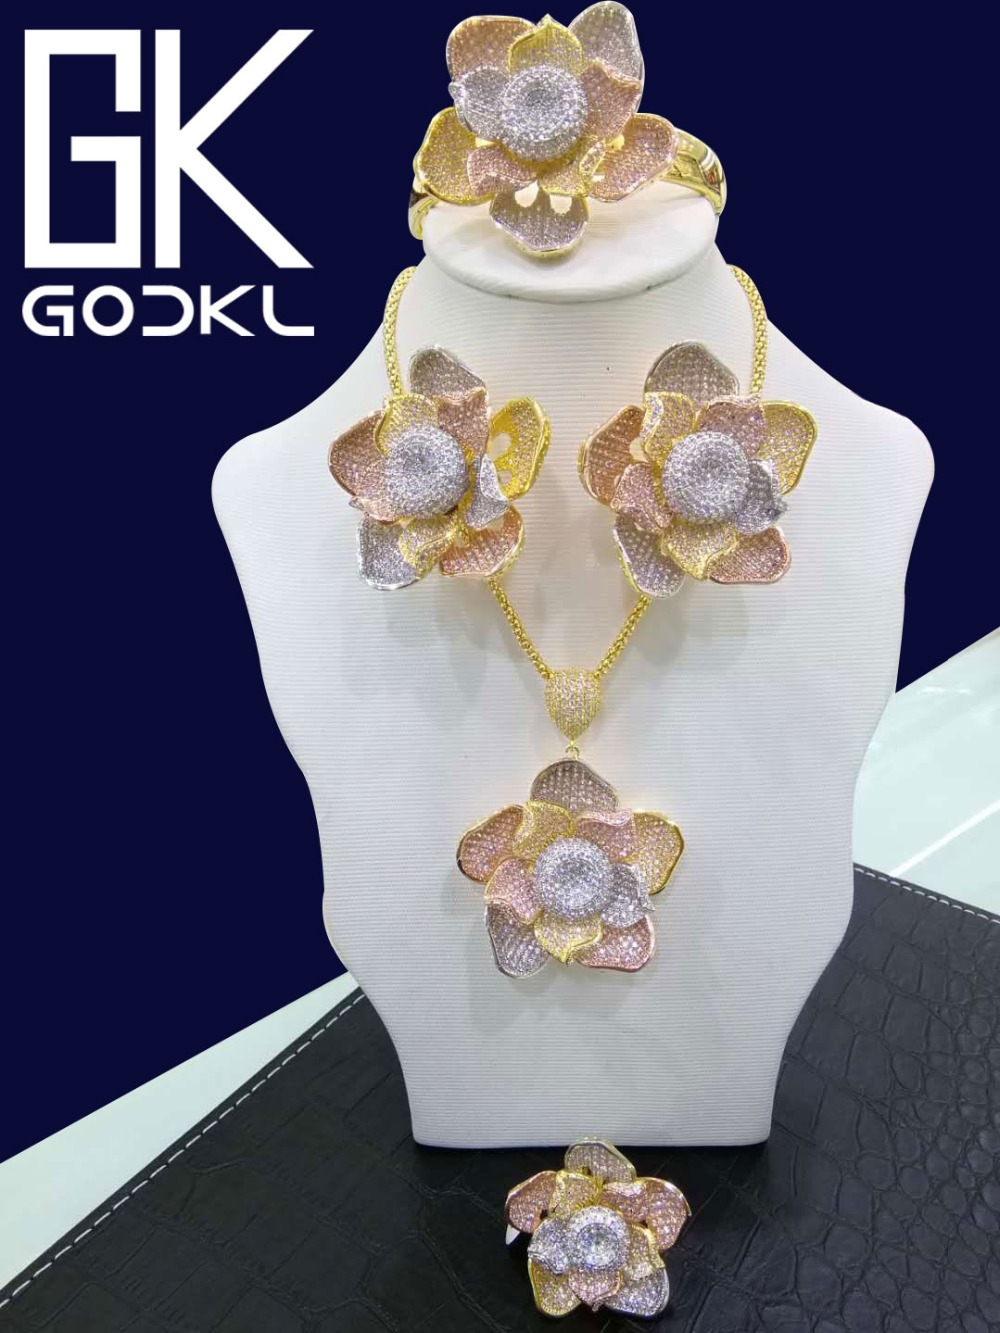 GODKI Luxury Nigerian Jewelry sets For Women Wedding Cubic Zirconia Flower African Beads Jewelry Sets Indian bridal jewelry sets